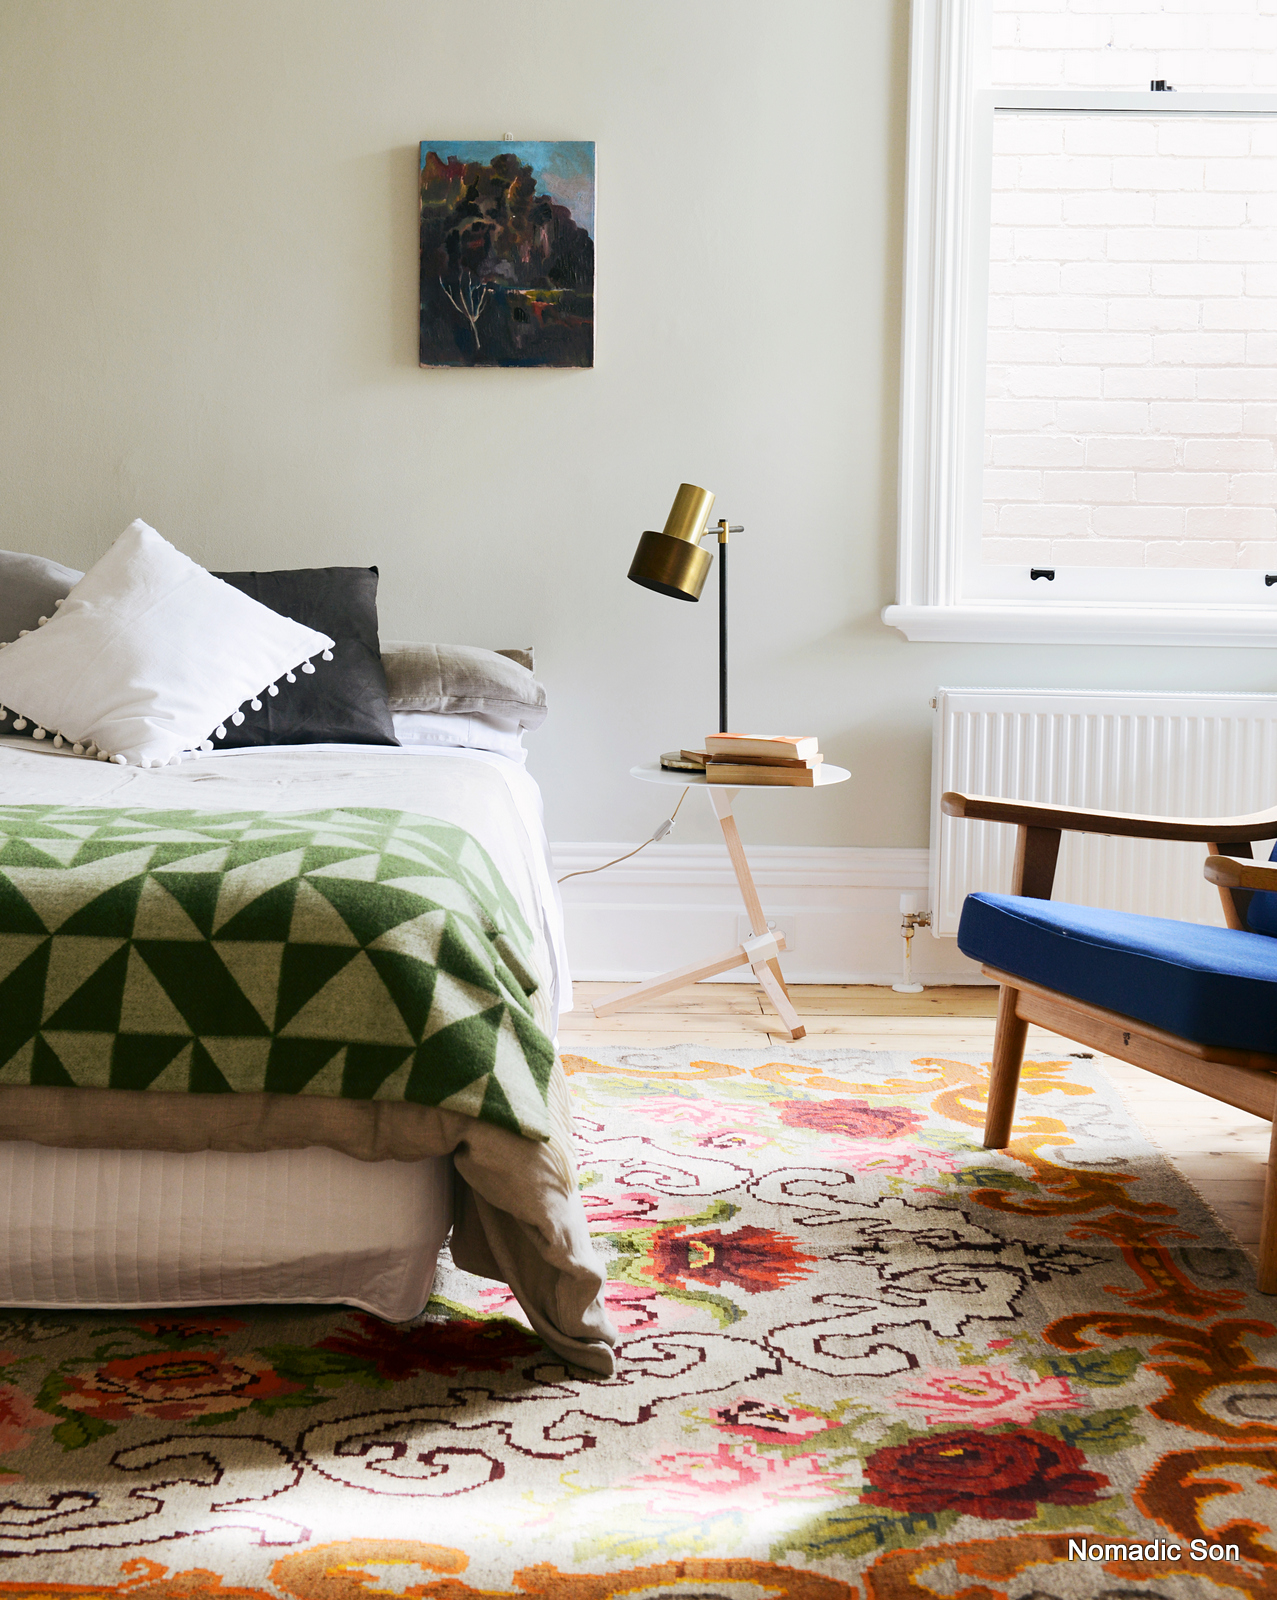 Credits: Nest Architect (The Architects), Esther Stewart (Stylist), Lauren Bamford (Photographer) & Nomadic Son (Rug)